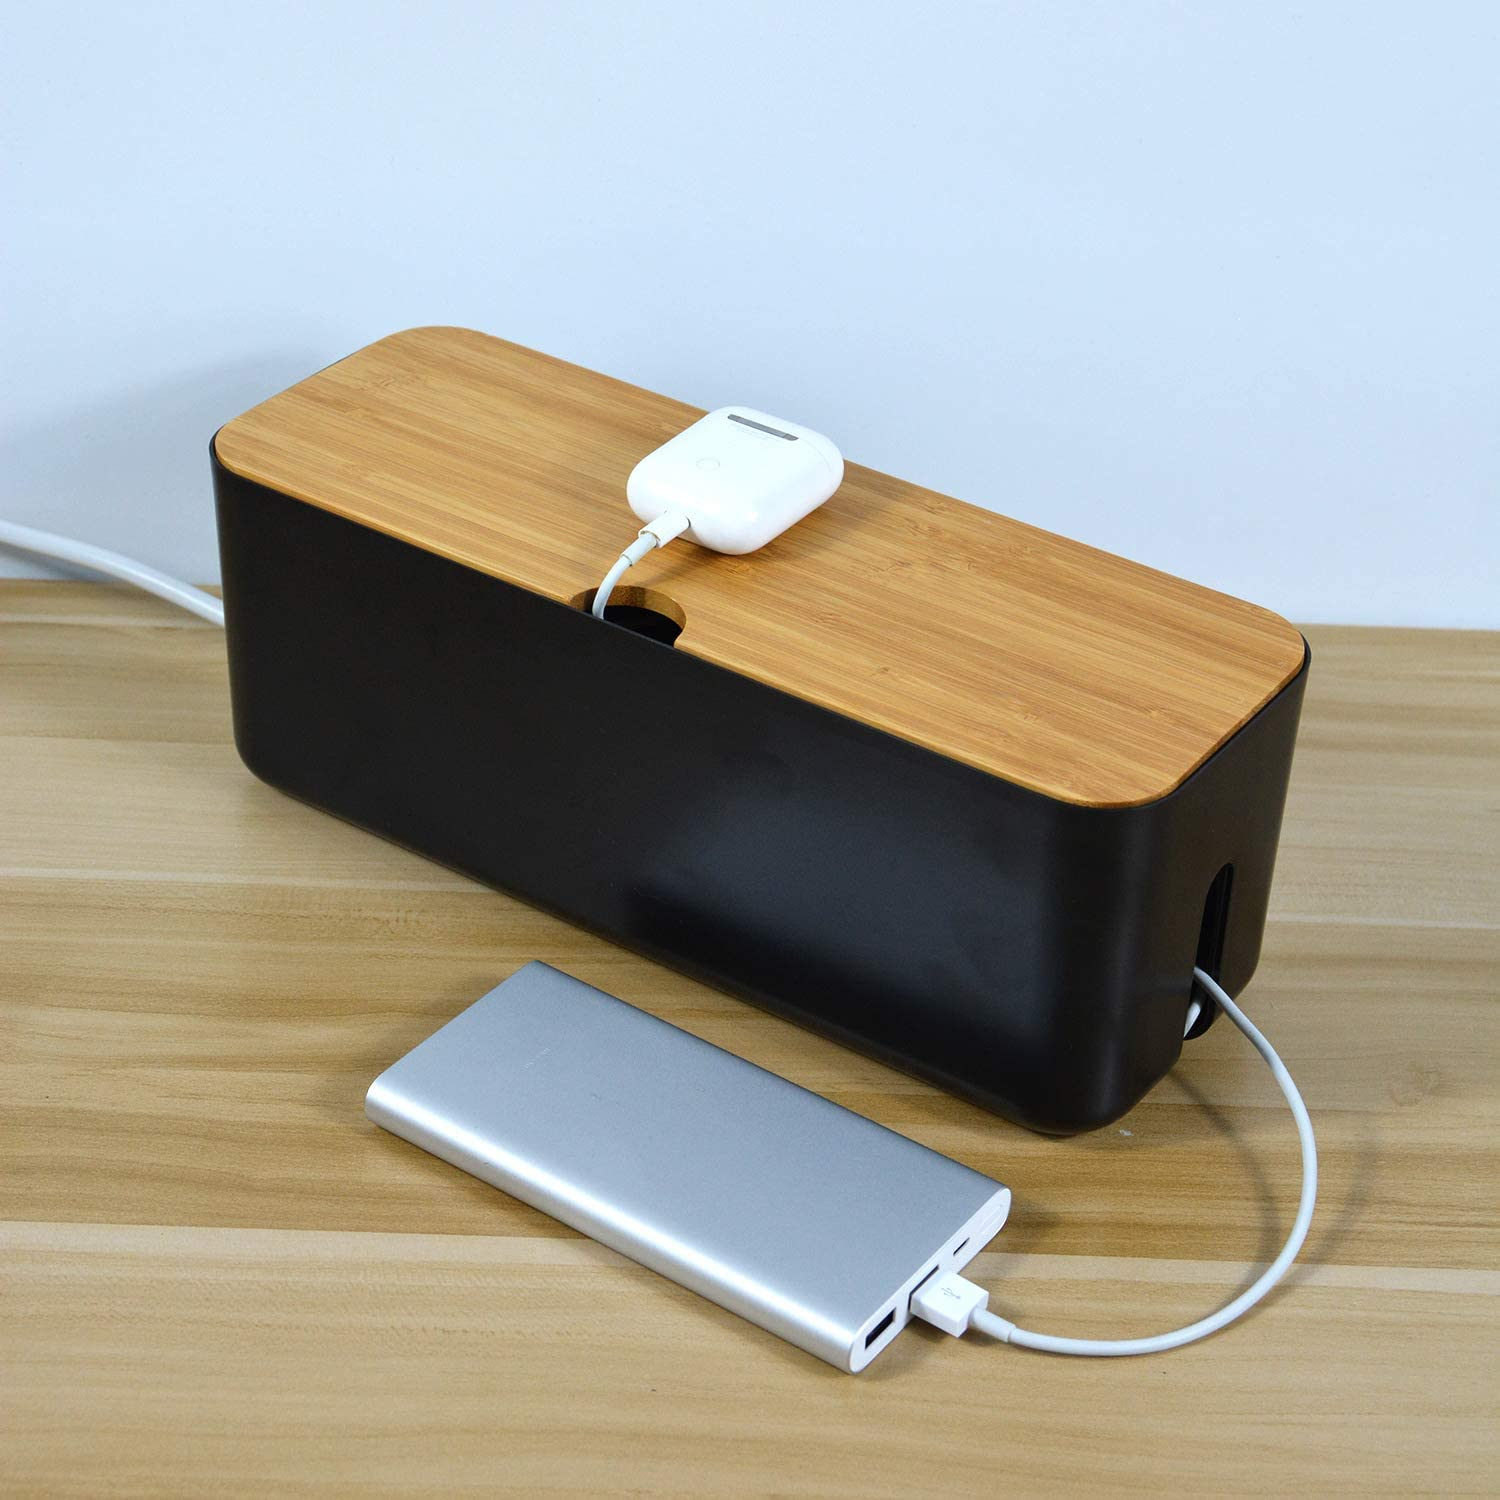 Black Changsuo Cable Management Box Wooden Cord Organizer Box for Extension Cord Power Stripe Surge Protector Wire Management Concealer Organizer Cover Hider for Desktop Home Office Kitchen